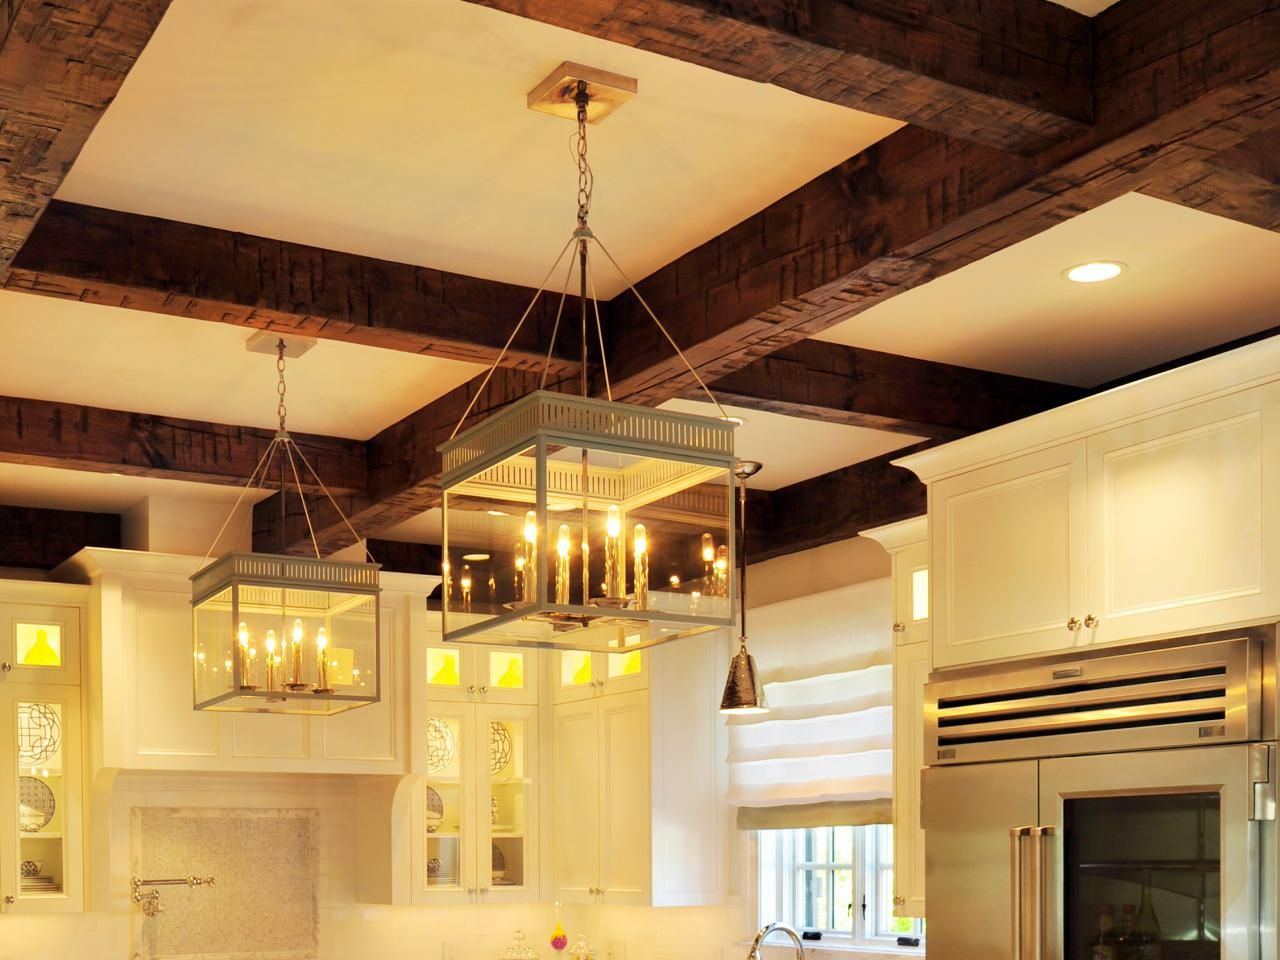 Exposed Dark Stained Wood Beams Create The Coffers In This